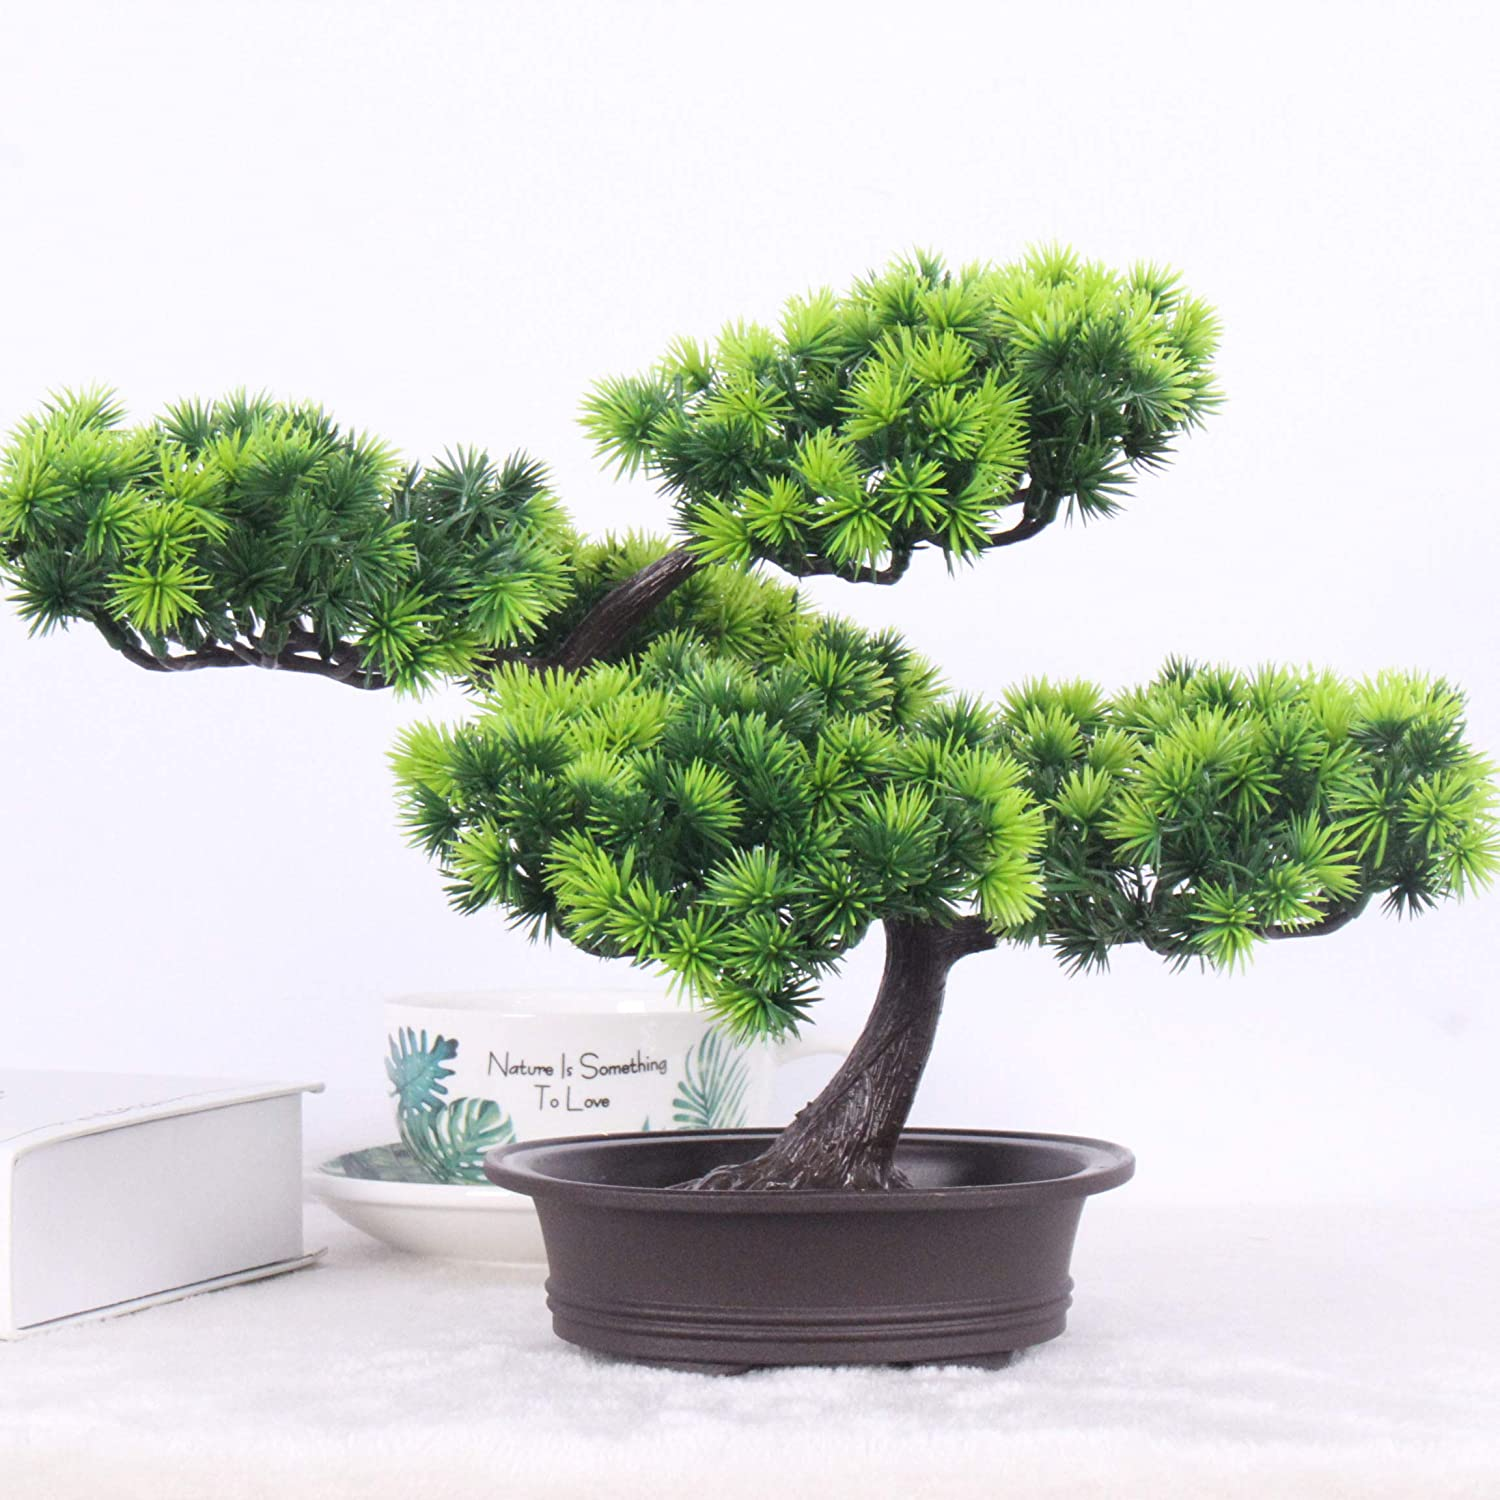 Amazon Com Simulated Welcome Pine Tree Artificial Welcoming Pine Bonsai Fake Potted Plant Ornament Potted Artificial Bonsai Tree Simulation Pine Plant Decoration Home Office Desktop Display Garden Decor 3 Home Kitchen